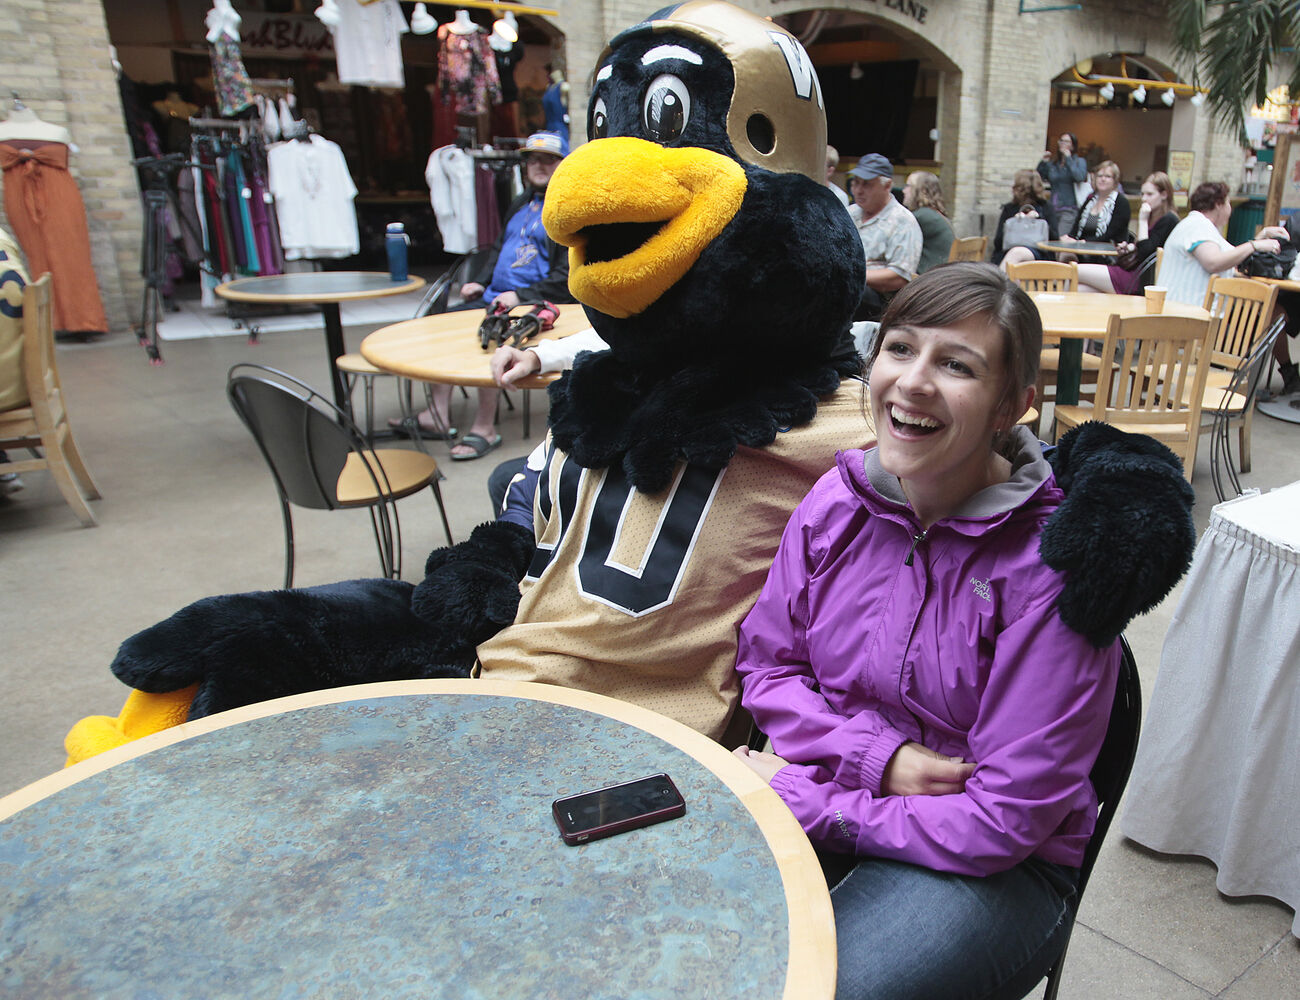 Boomer gets cozy with Sandy Broesky. (John Woods / Winnipeg Free Press)